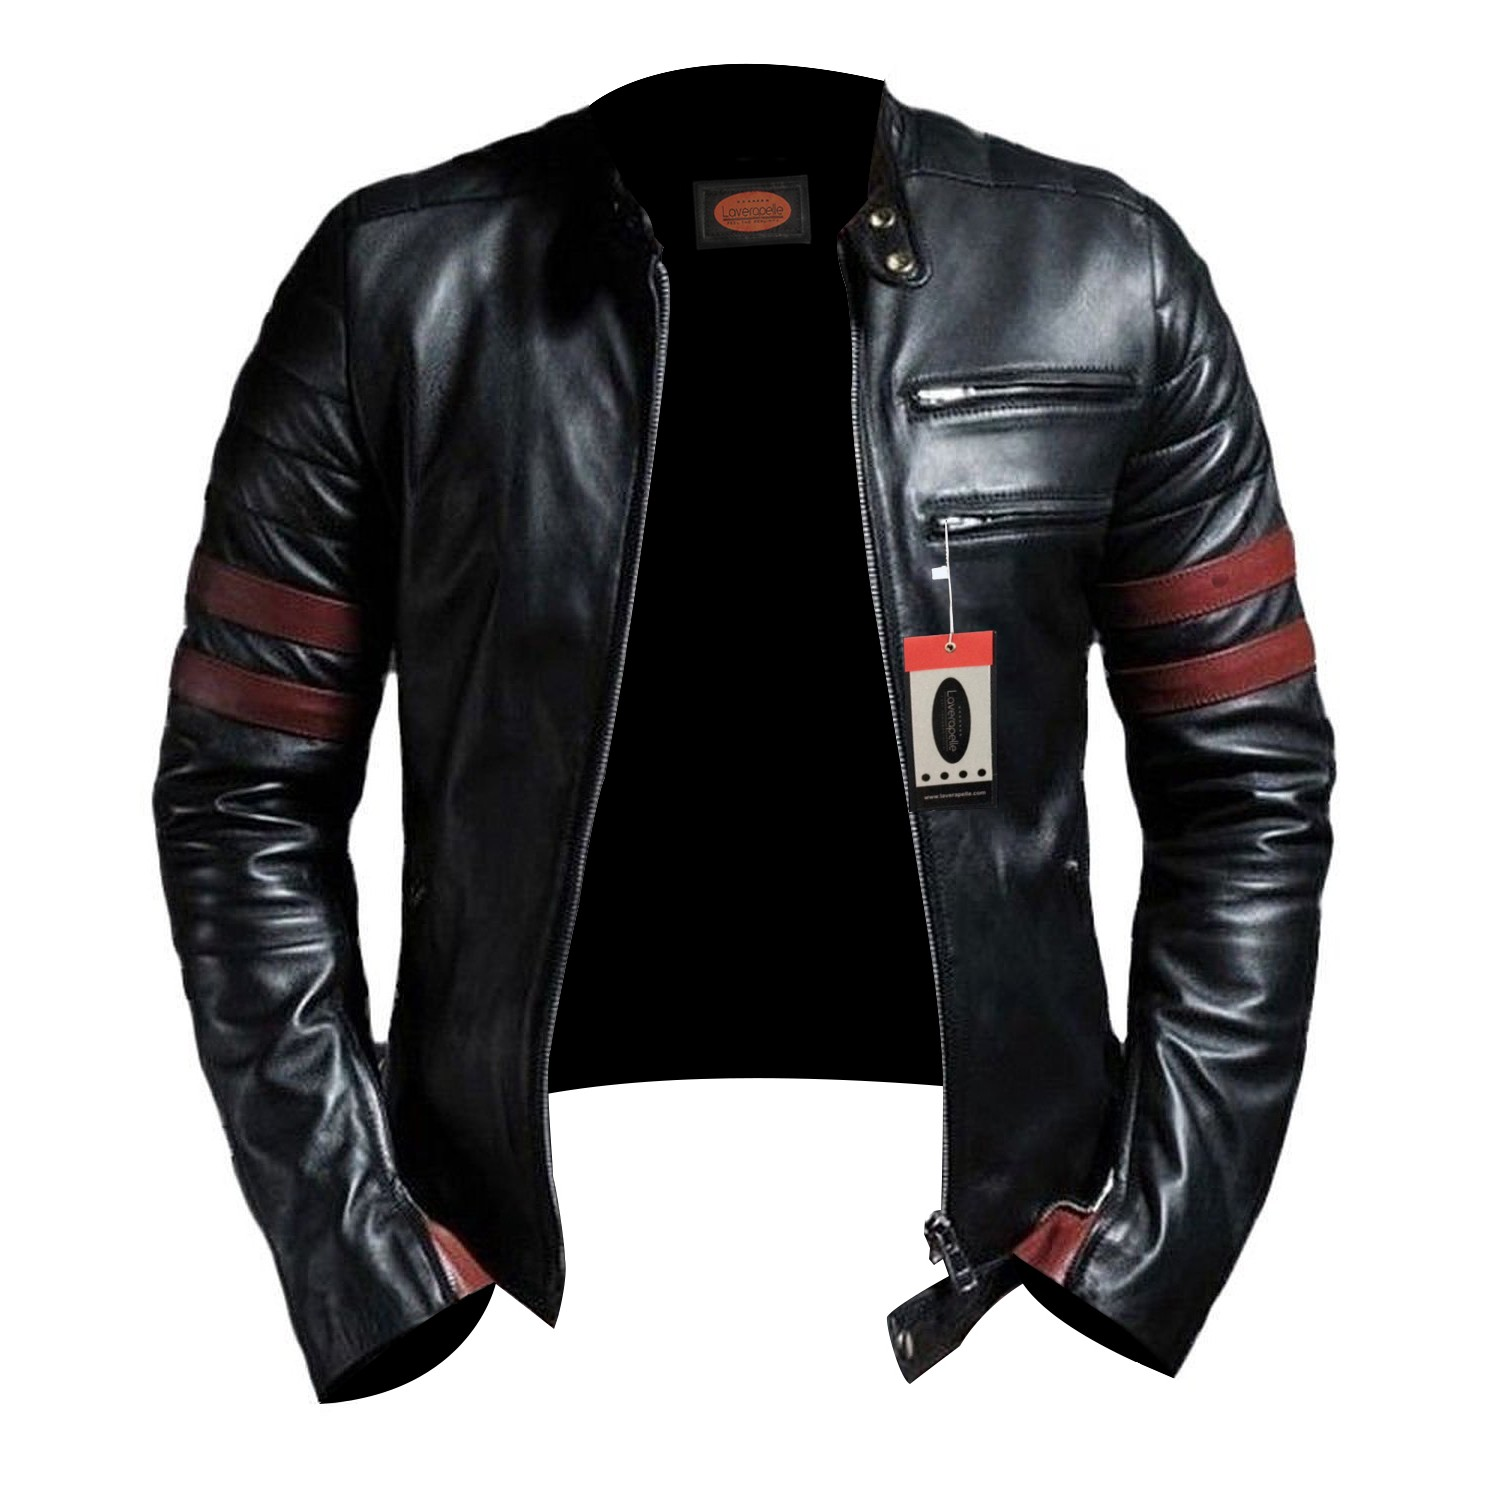 rug french andrew normal in gallery men clothing marc lyst for rugged jacket product black leather